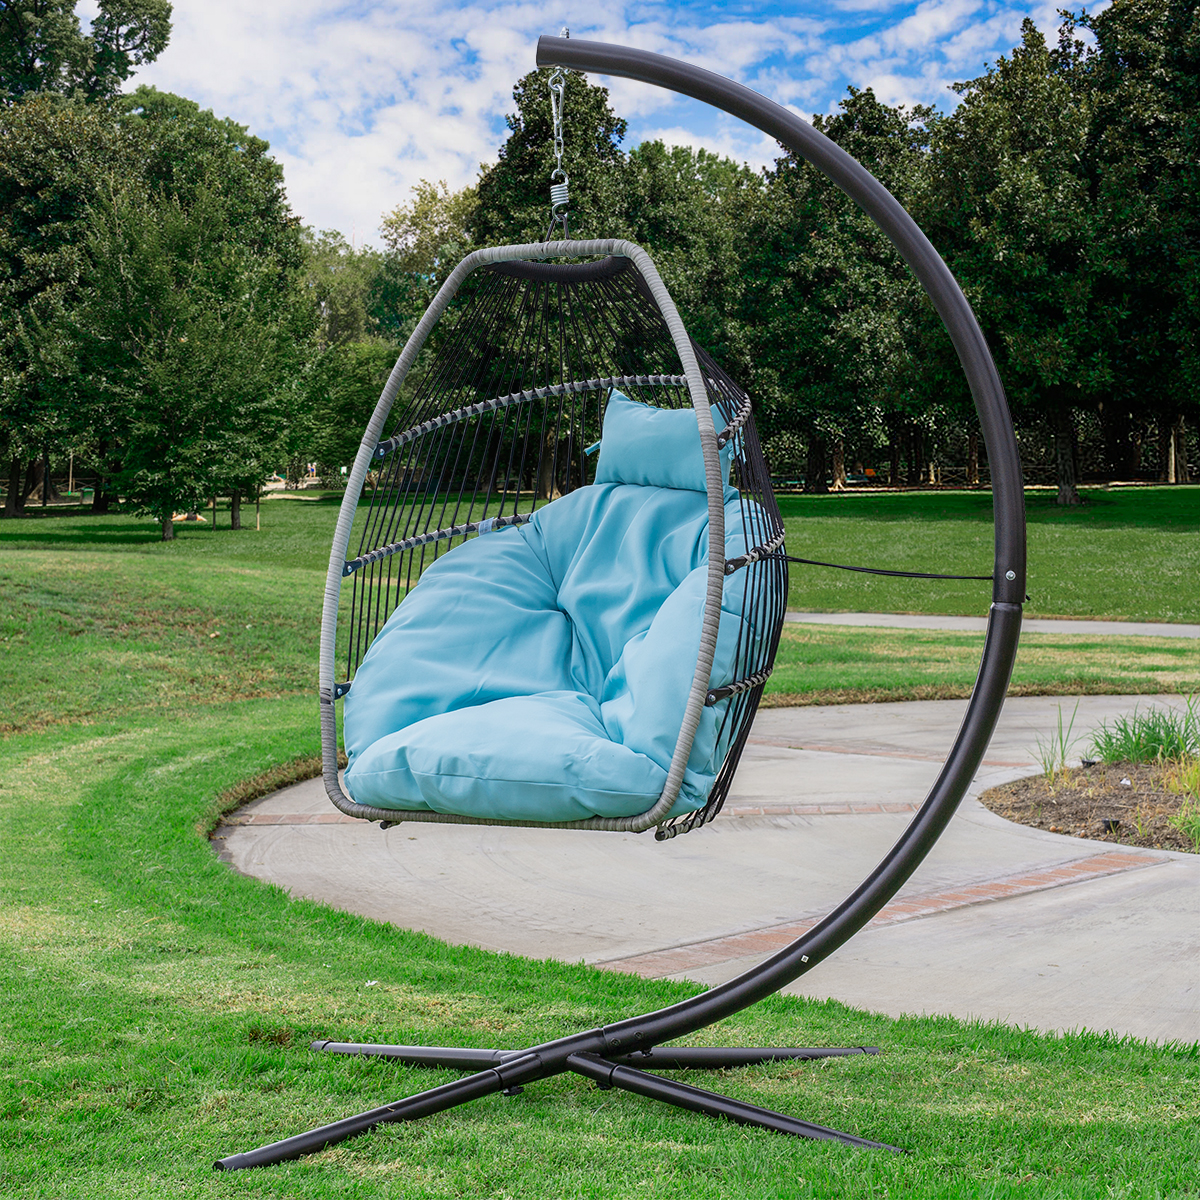 Fantastic Details About Premium Outdoor Hanging Chair Swing Chair Patio Egg Chair Large Cushion Large Caraccident5 Cool Chair Designs And Ideas Caraccident5Info